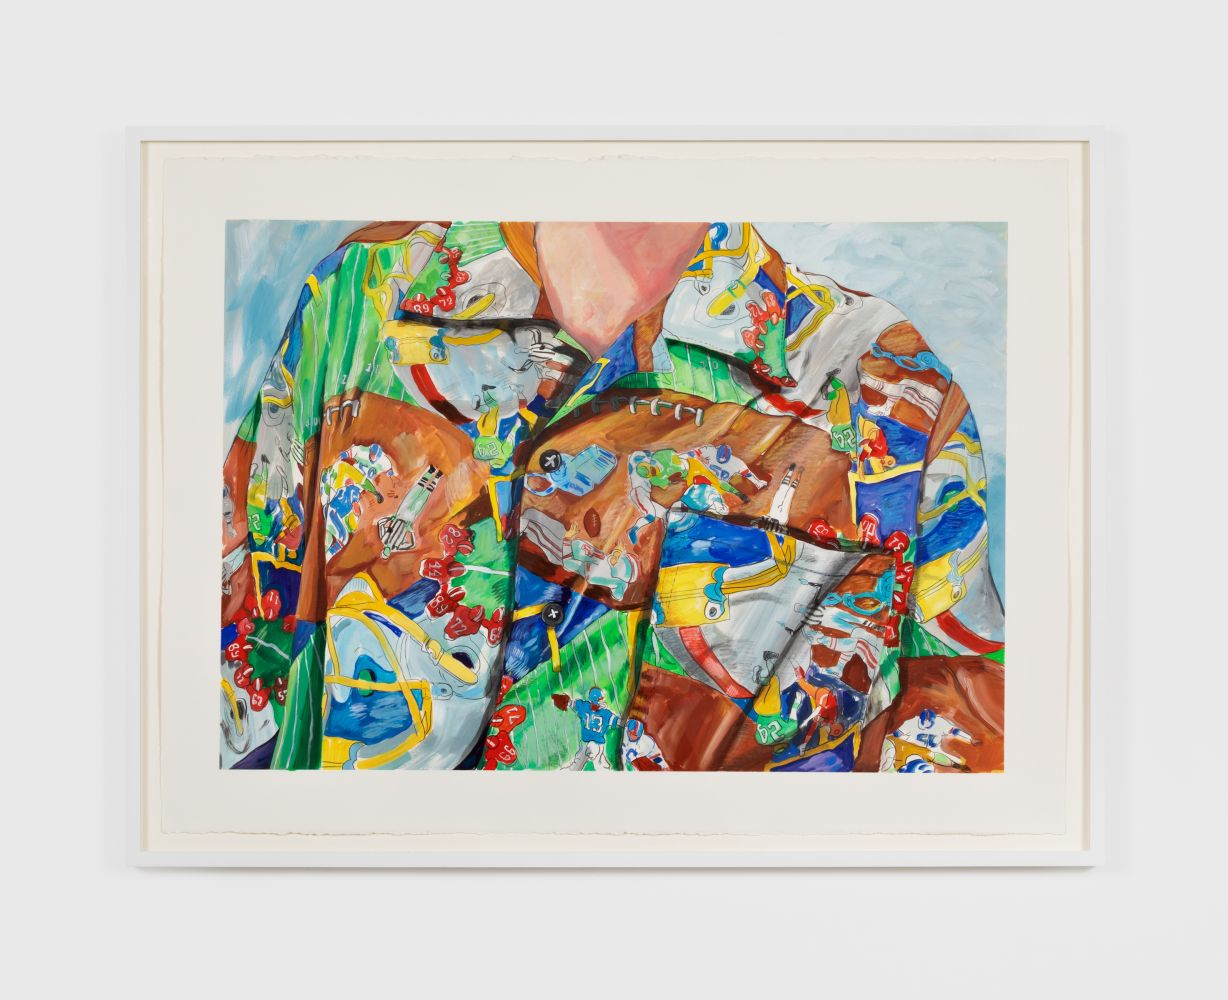 Rebecca Ness, Football Shirt, 2020. Gouache and pencil on paper, 22 x 30 in, 55.9 x 76.2 cm, 24 5/8 x 32 3/4 in (framed), 62.5 x 83.2 cm (RNE20.018)